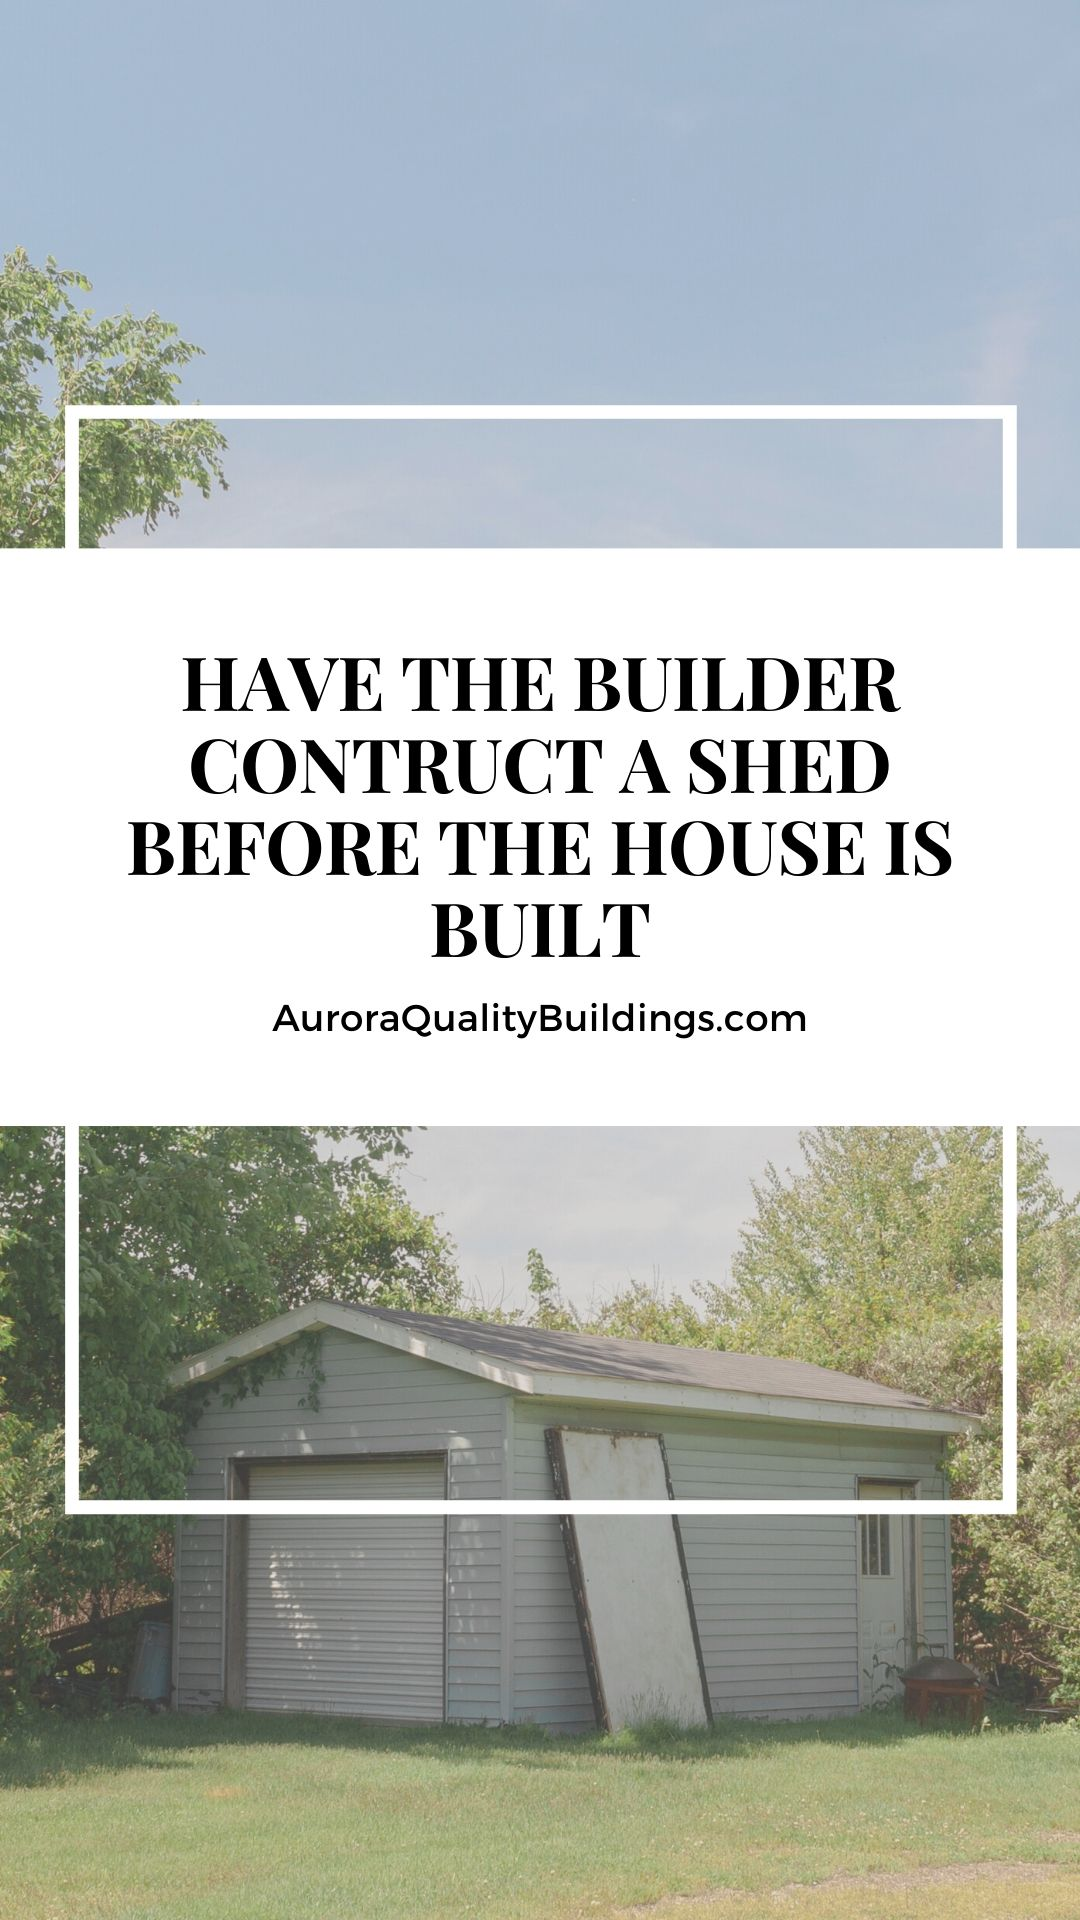 Builders build a shed before completing the house